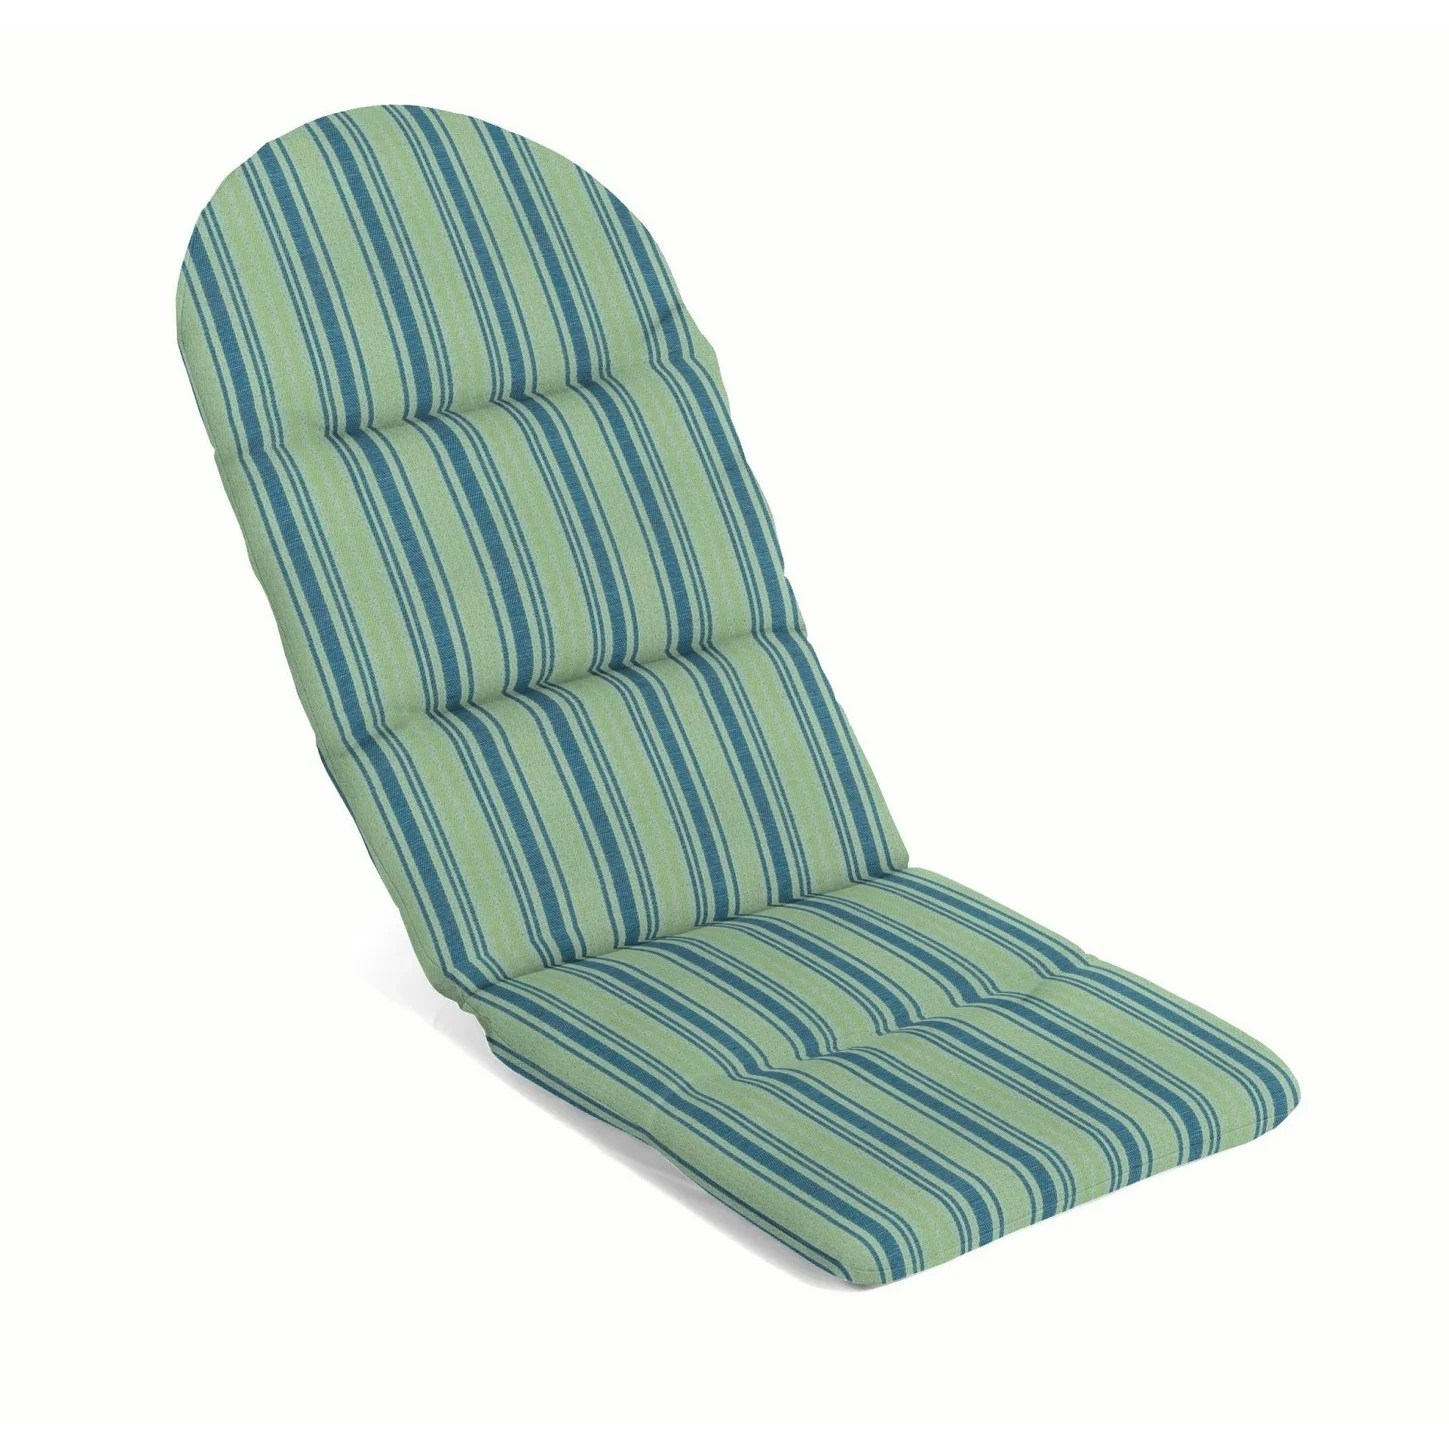 Weatherproof Adirondack Chairs Sunproof By Weatherproof Outdoor Adirondack Chair Cushion 49 In X 20 5 In